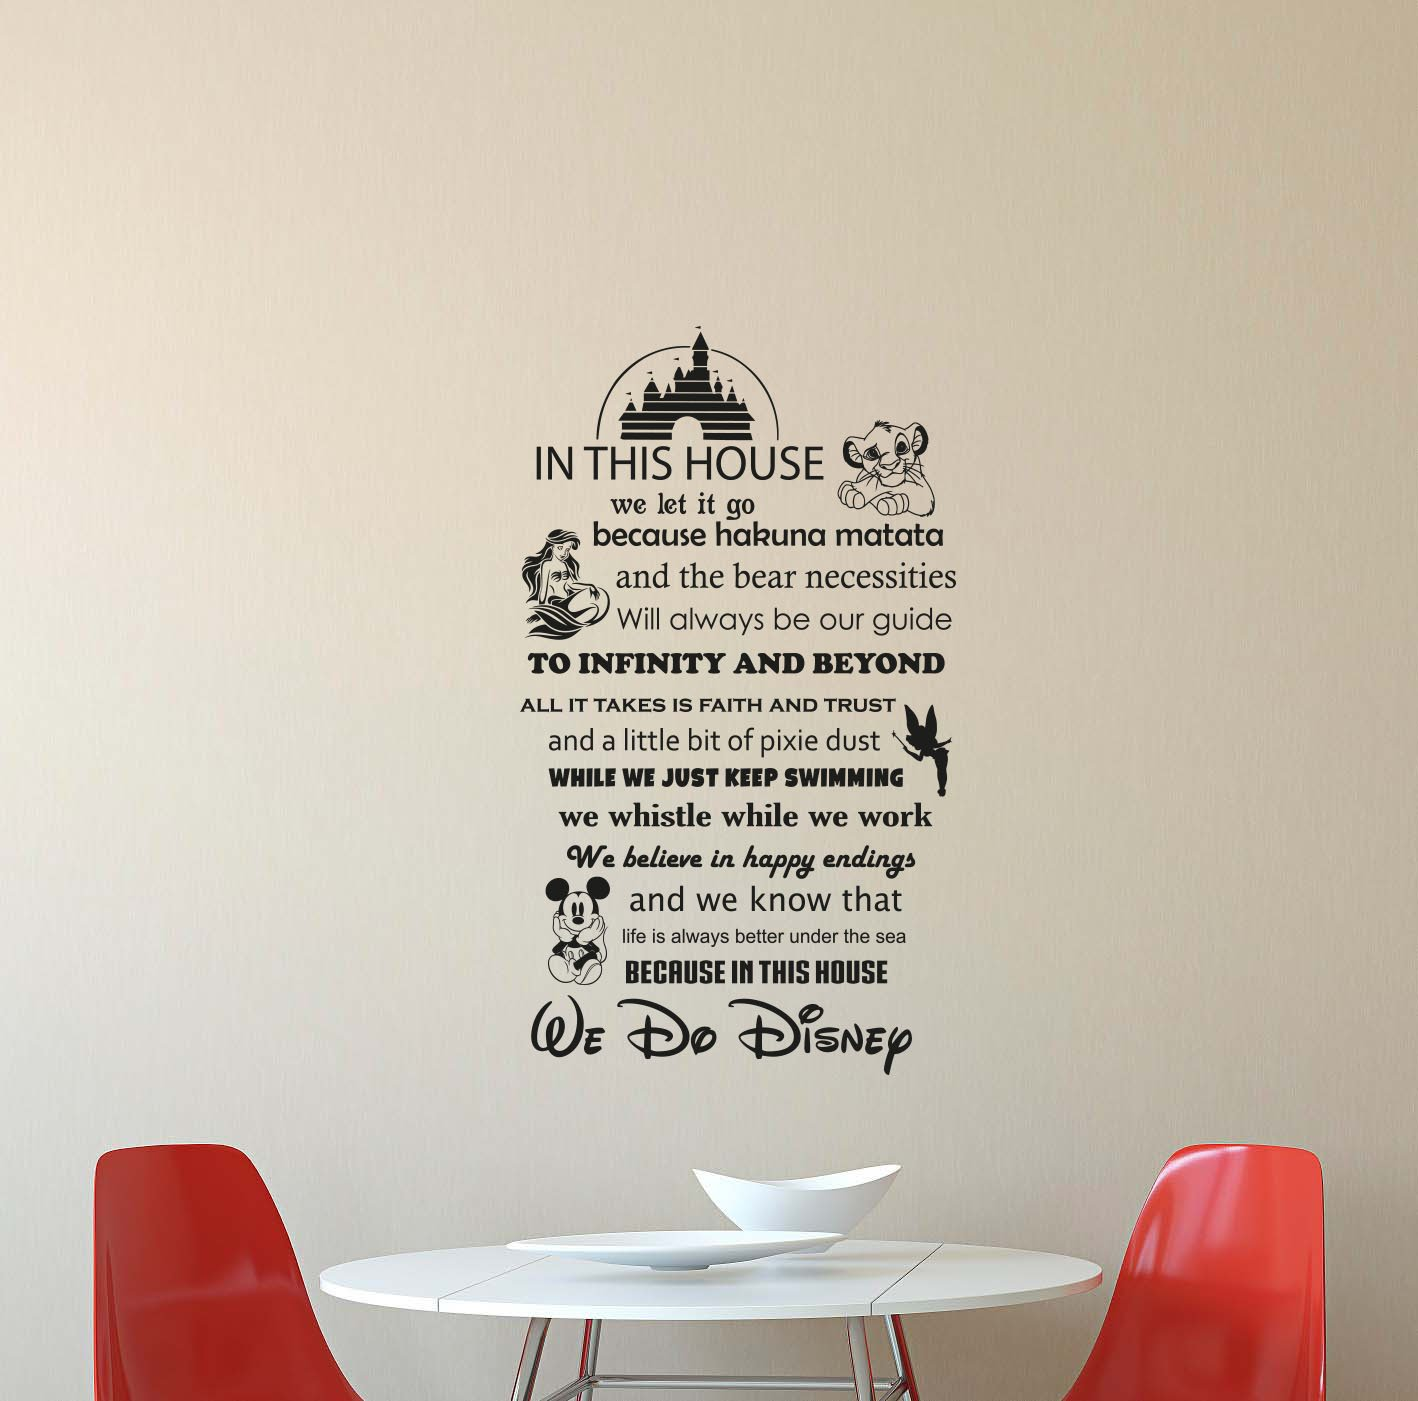 In This House We Do Disney Wall Decal Walt Disney Quote Lettering Vinyl Sticker Living Room Boy Girl Teens Kids Decorations Housewares Home Bedroom Nursery Decor Art Poster Mural Custom Print 415